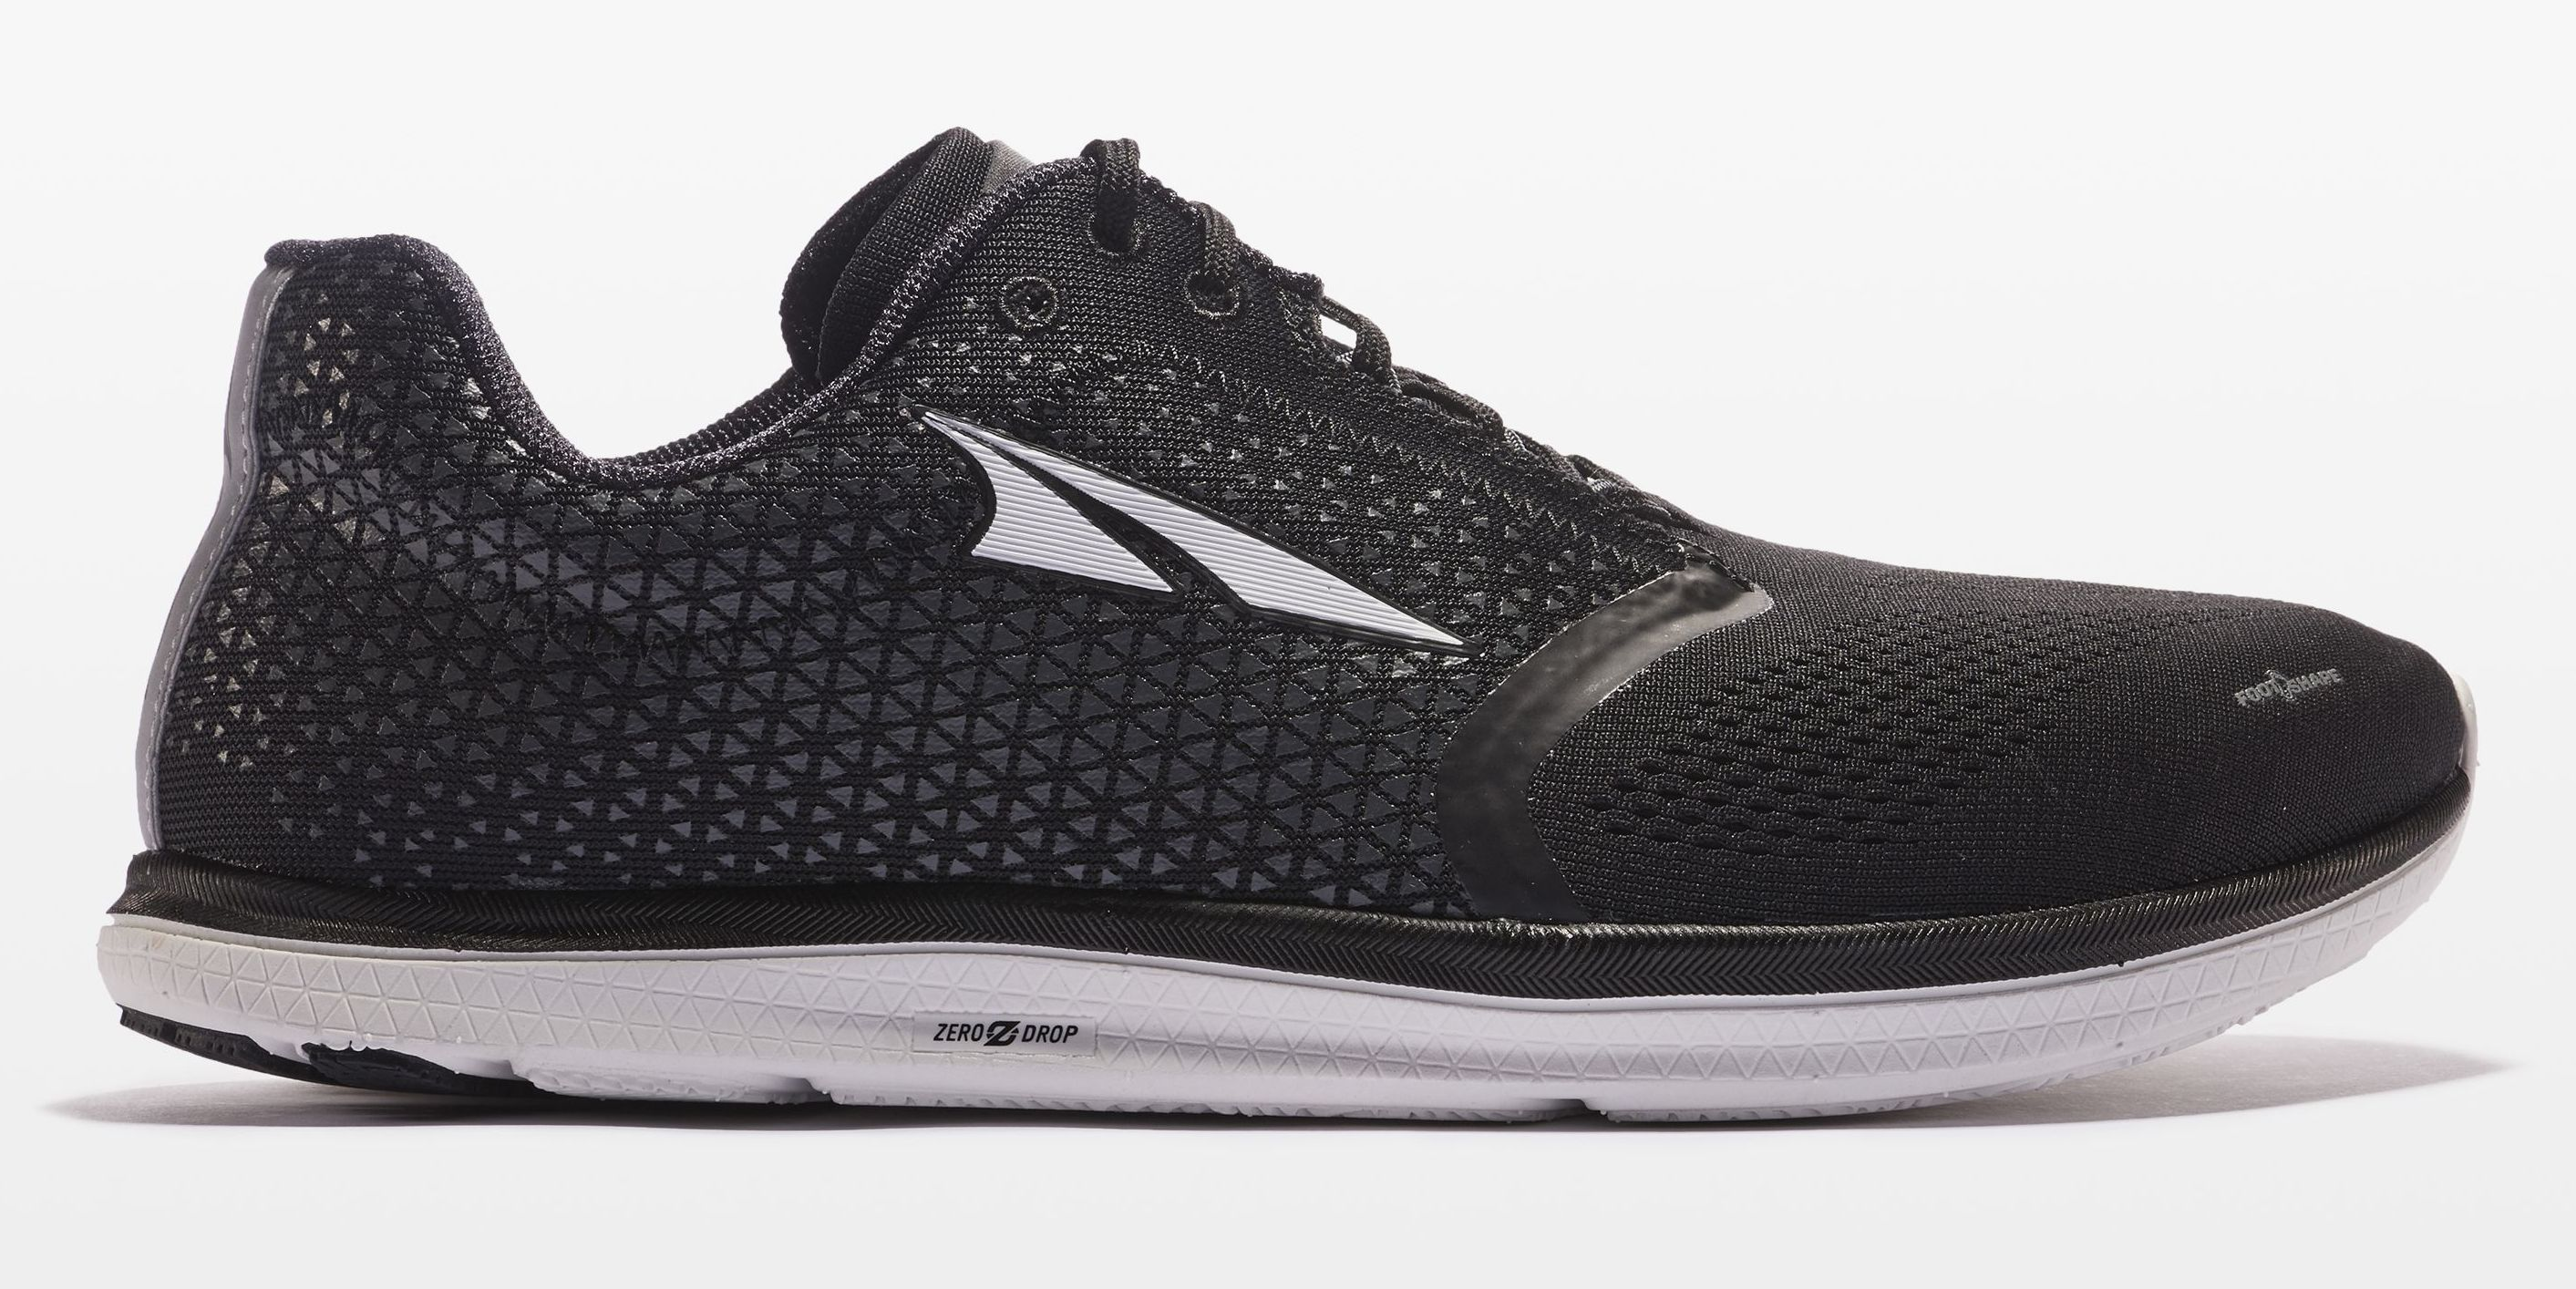 1883233af758a Altra Running Shoes 2019 | Altra Shoe Reviews